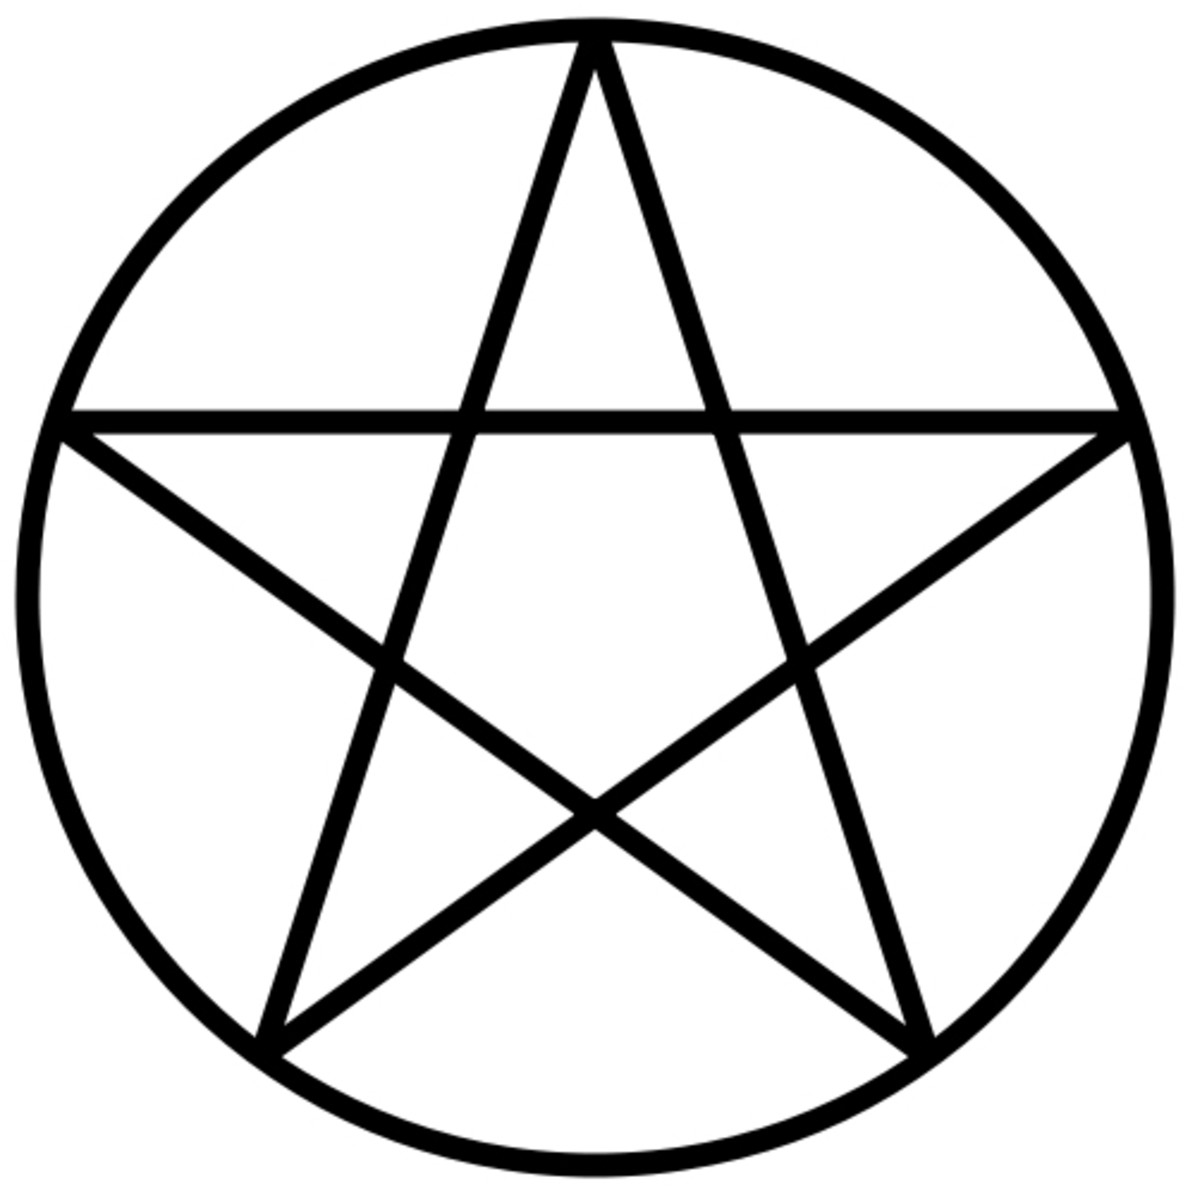 The pentacle can be used to represent the four elements of earth, air, fire and water. The fifth point signifies the element of spirit.